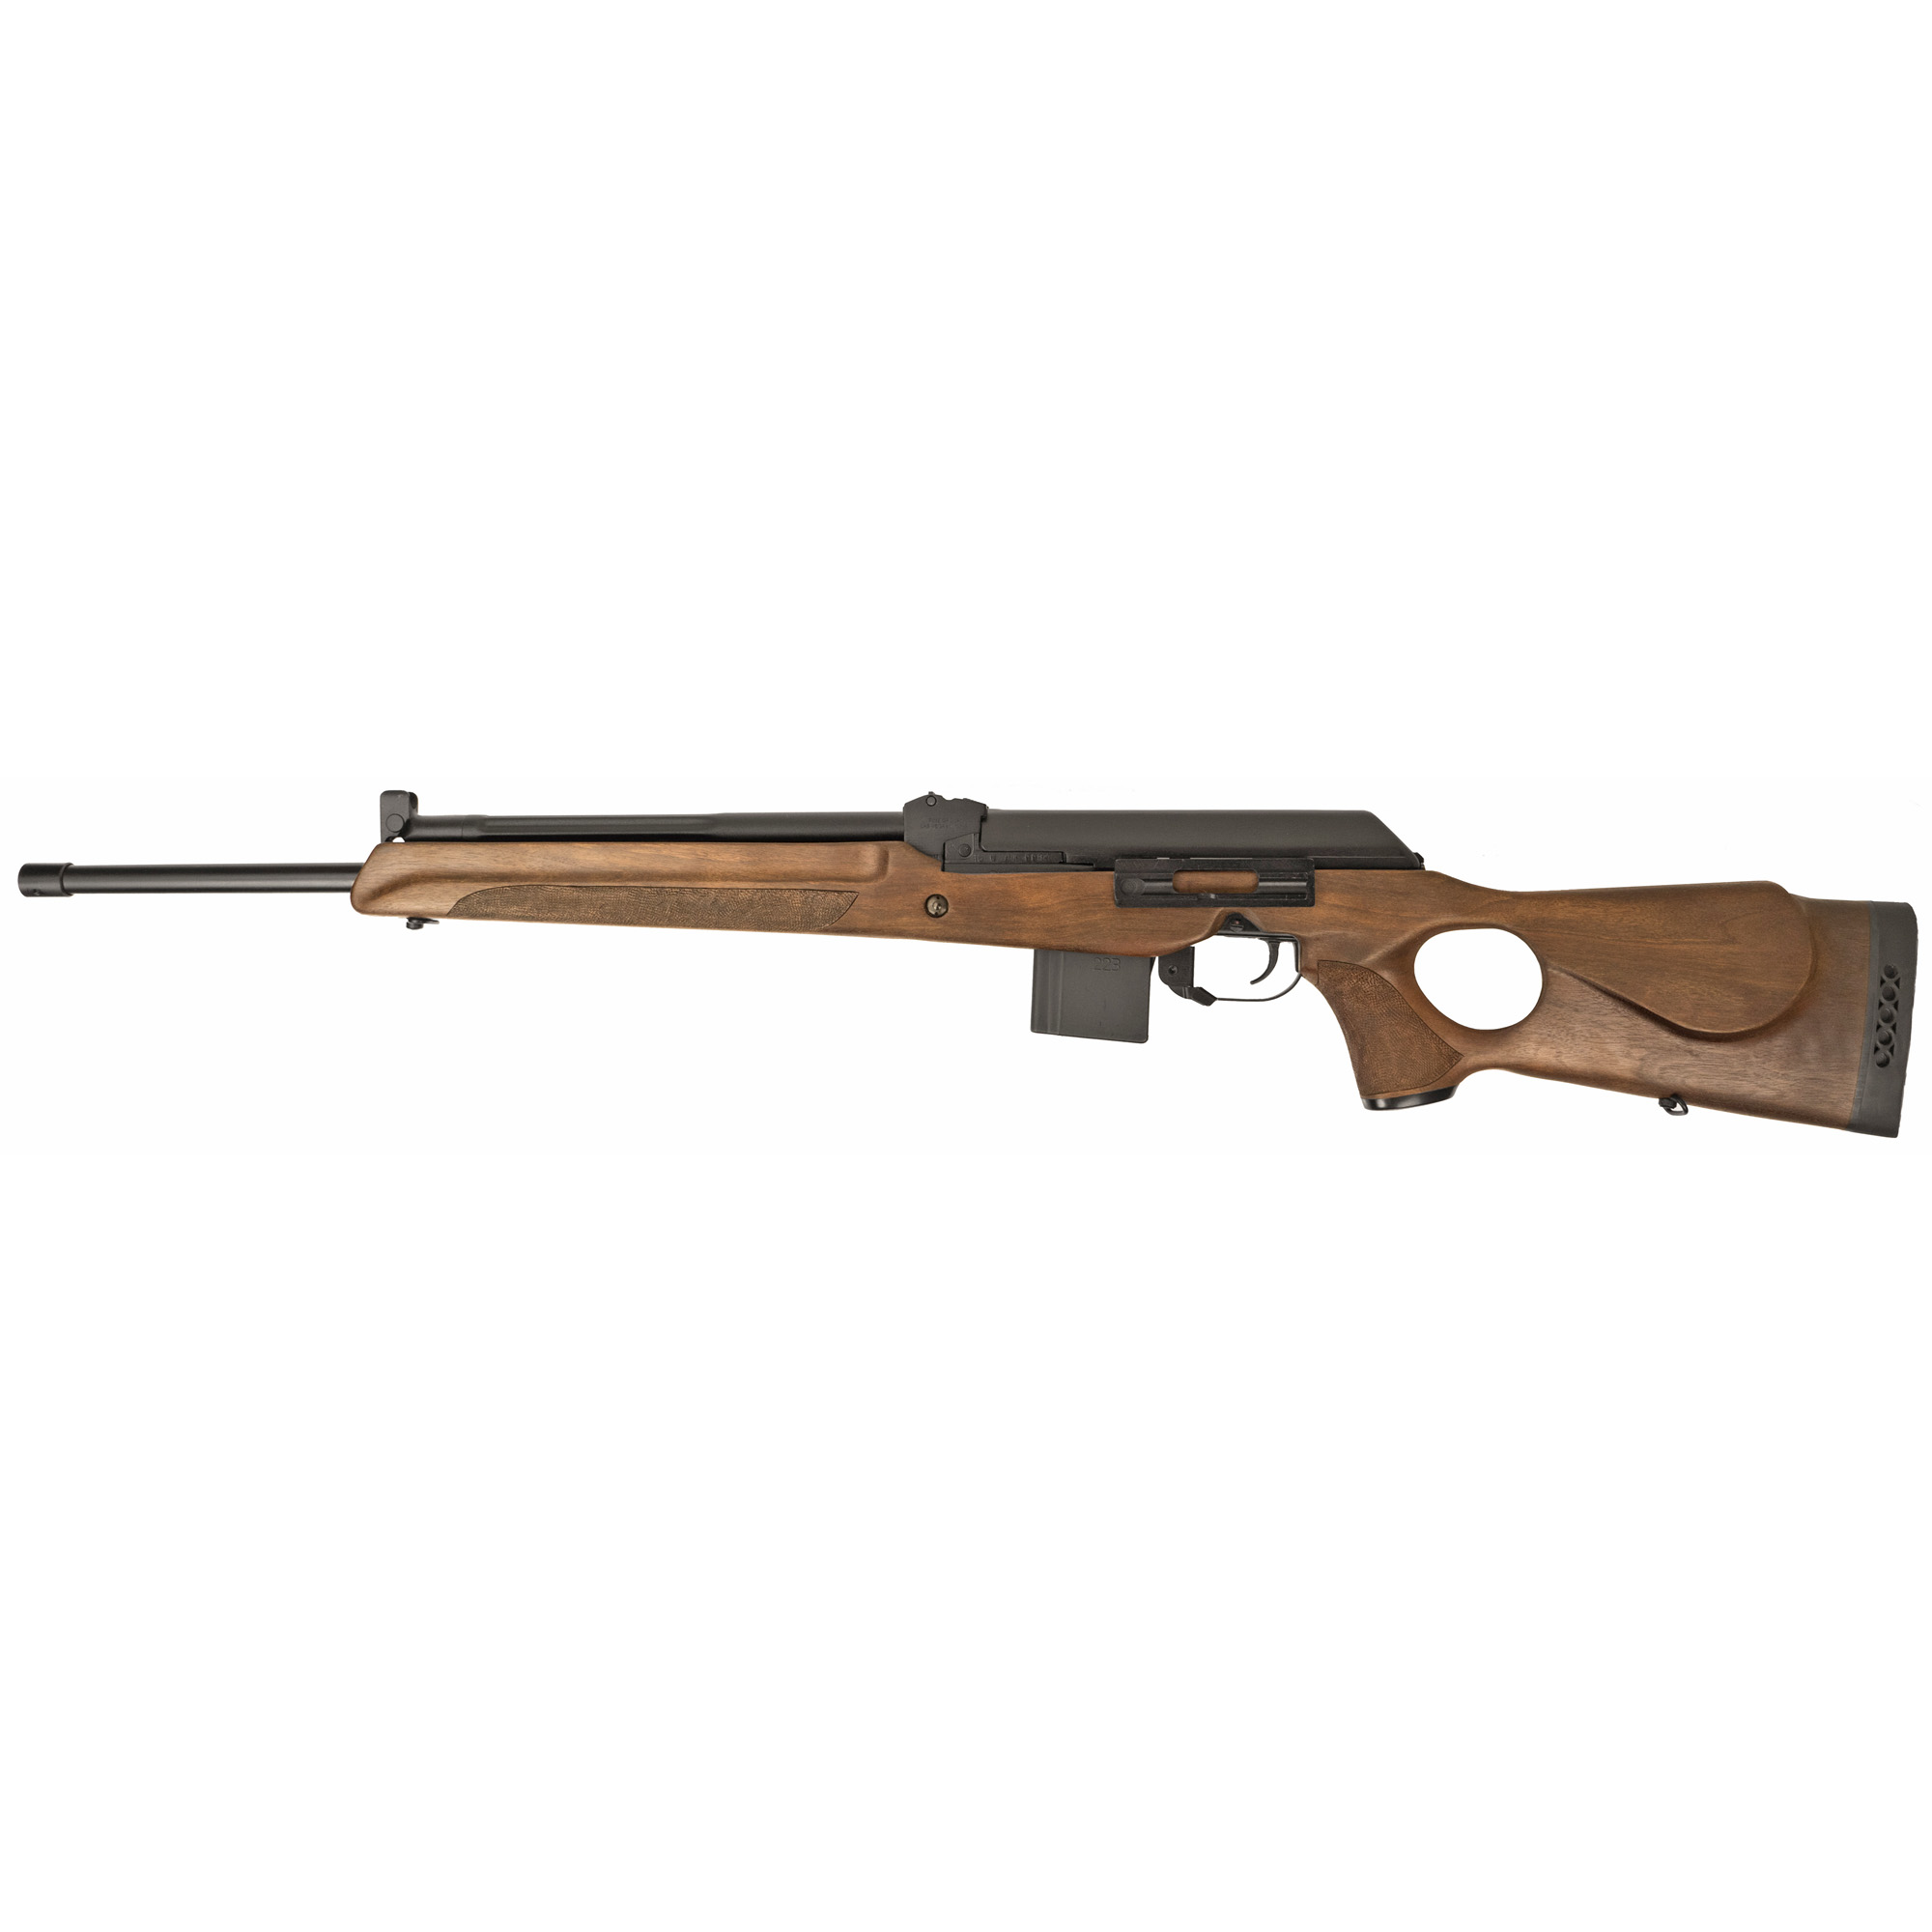 """The Fime Vepr Super 223 has a 1-piece thumbhole wood stock"""" 21.6"""" chrome lined hammer forged barrel and two 10 round magazines."""